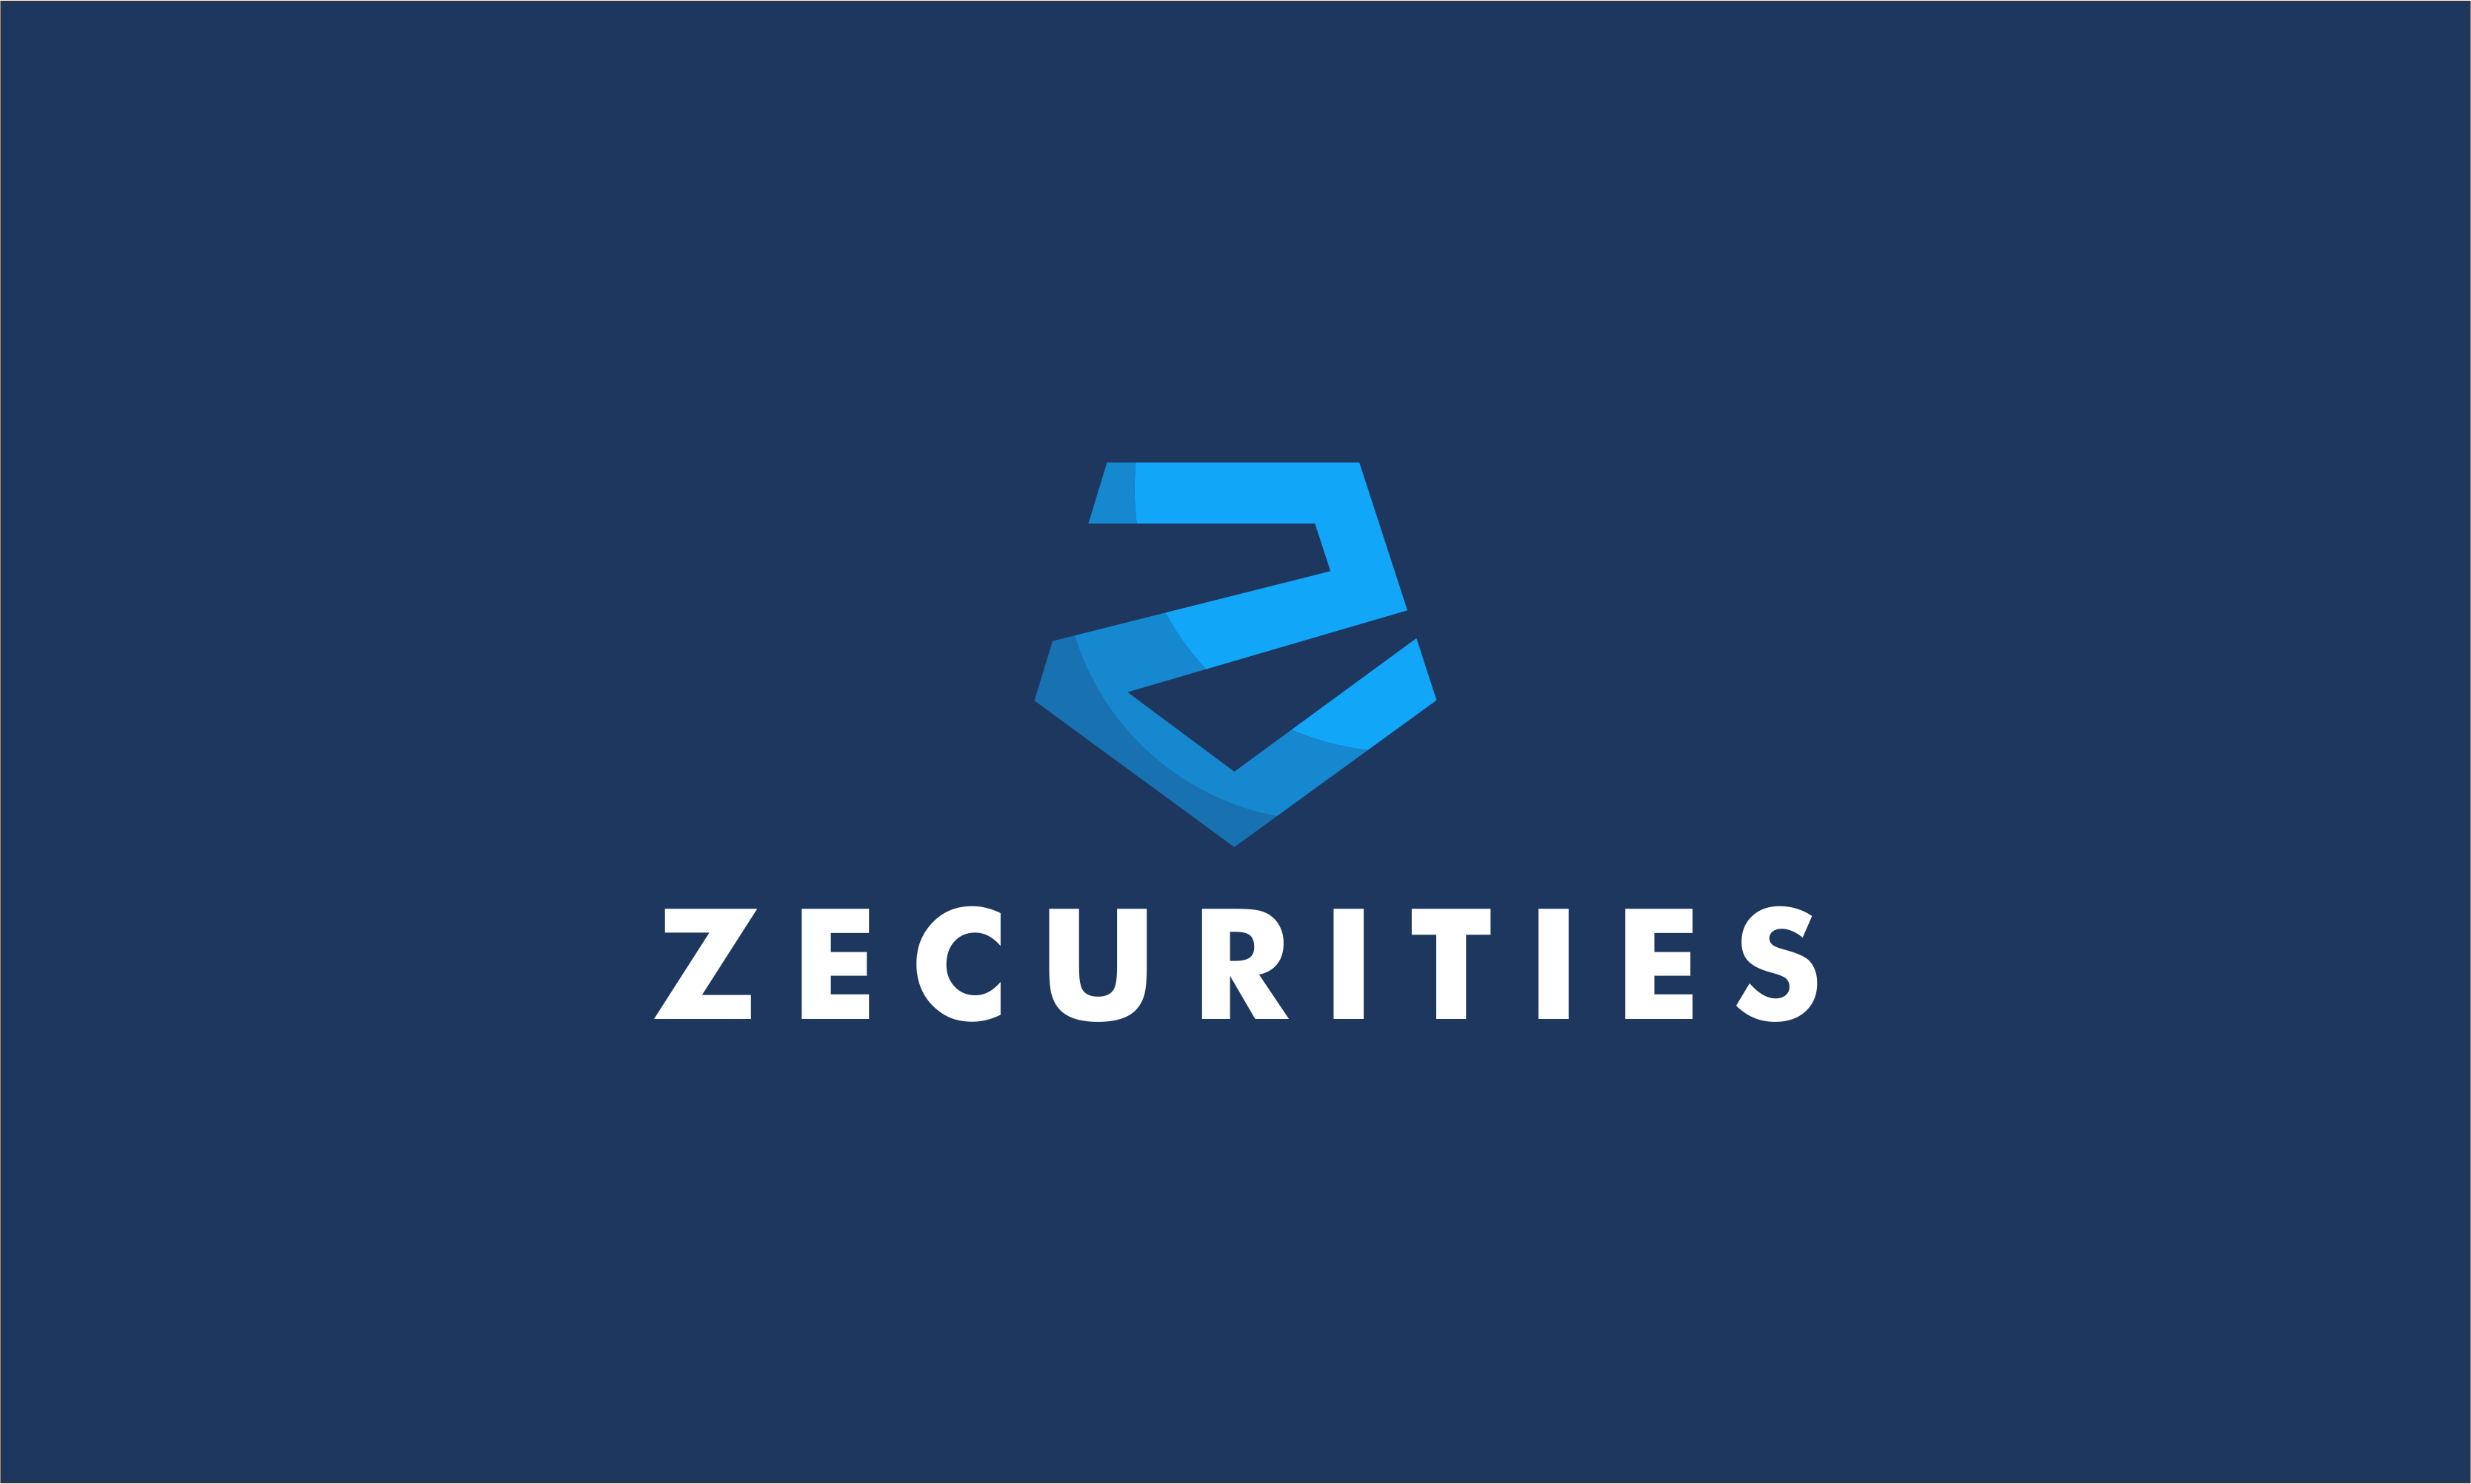 Zecurities